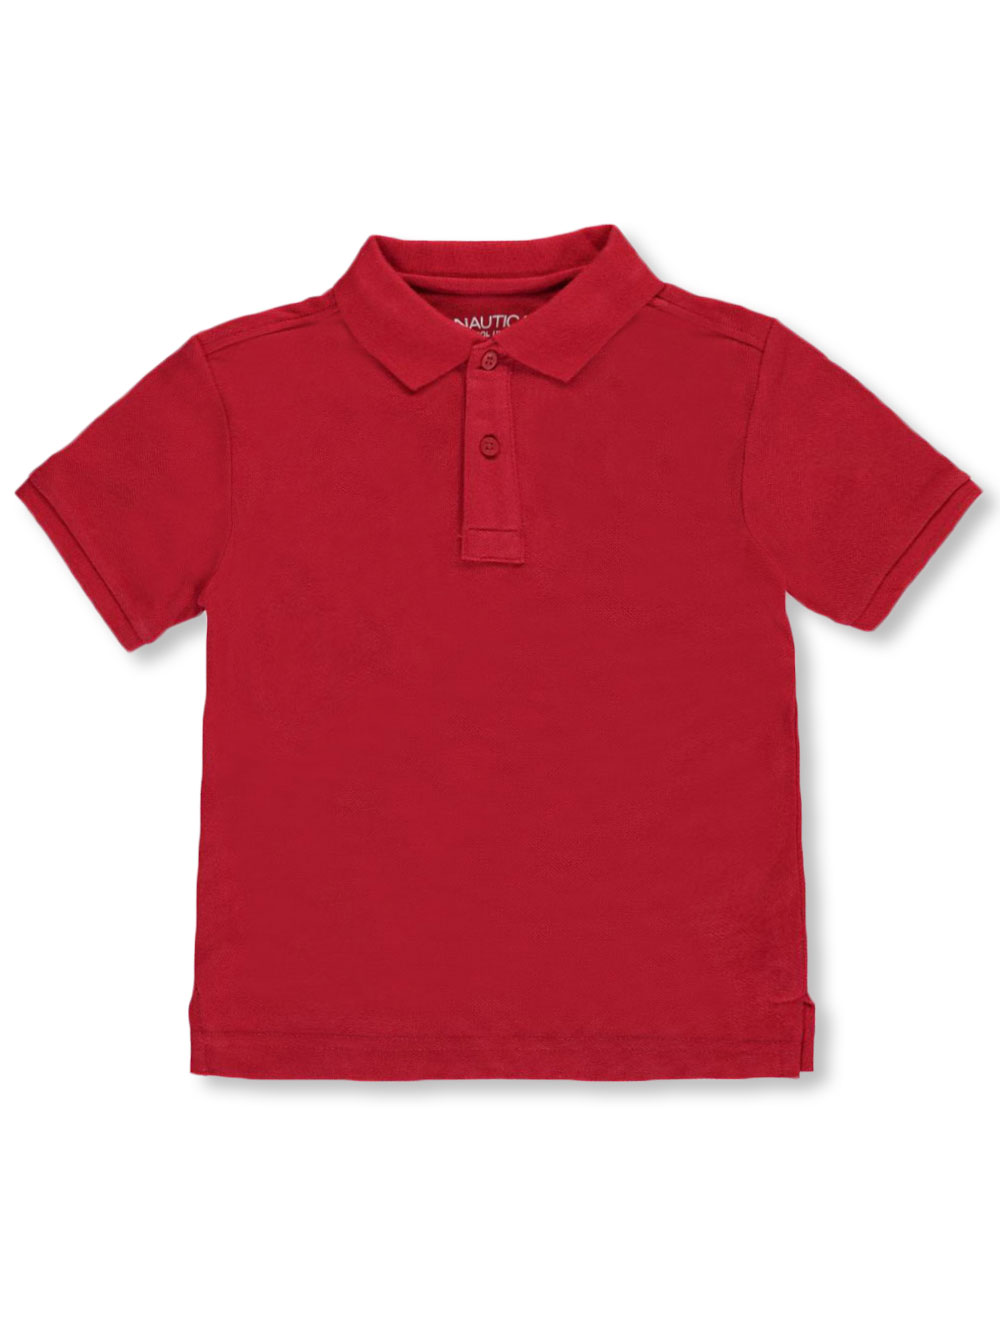 Boys Red Knit Polos